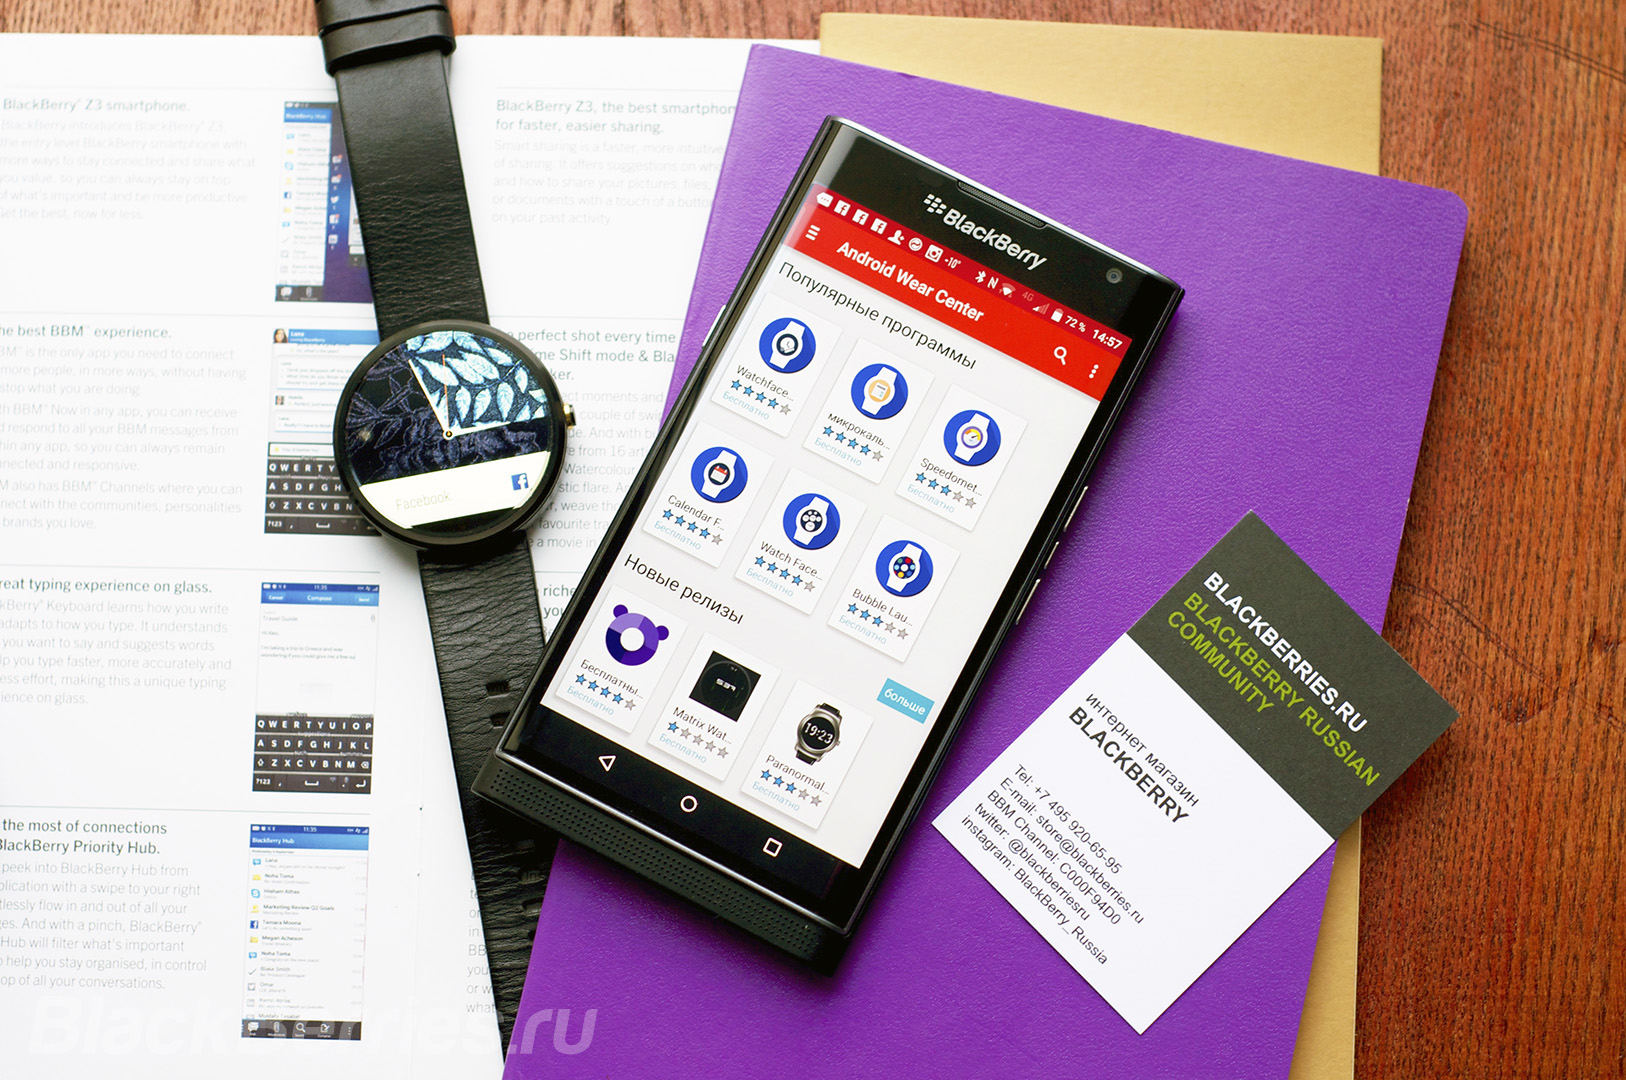 Умные часы Android Wear APK 1.4 для Android - …